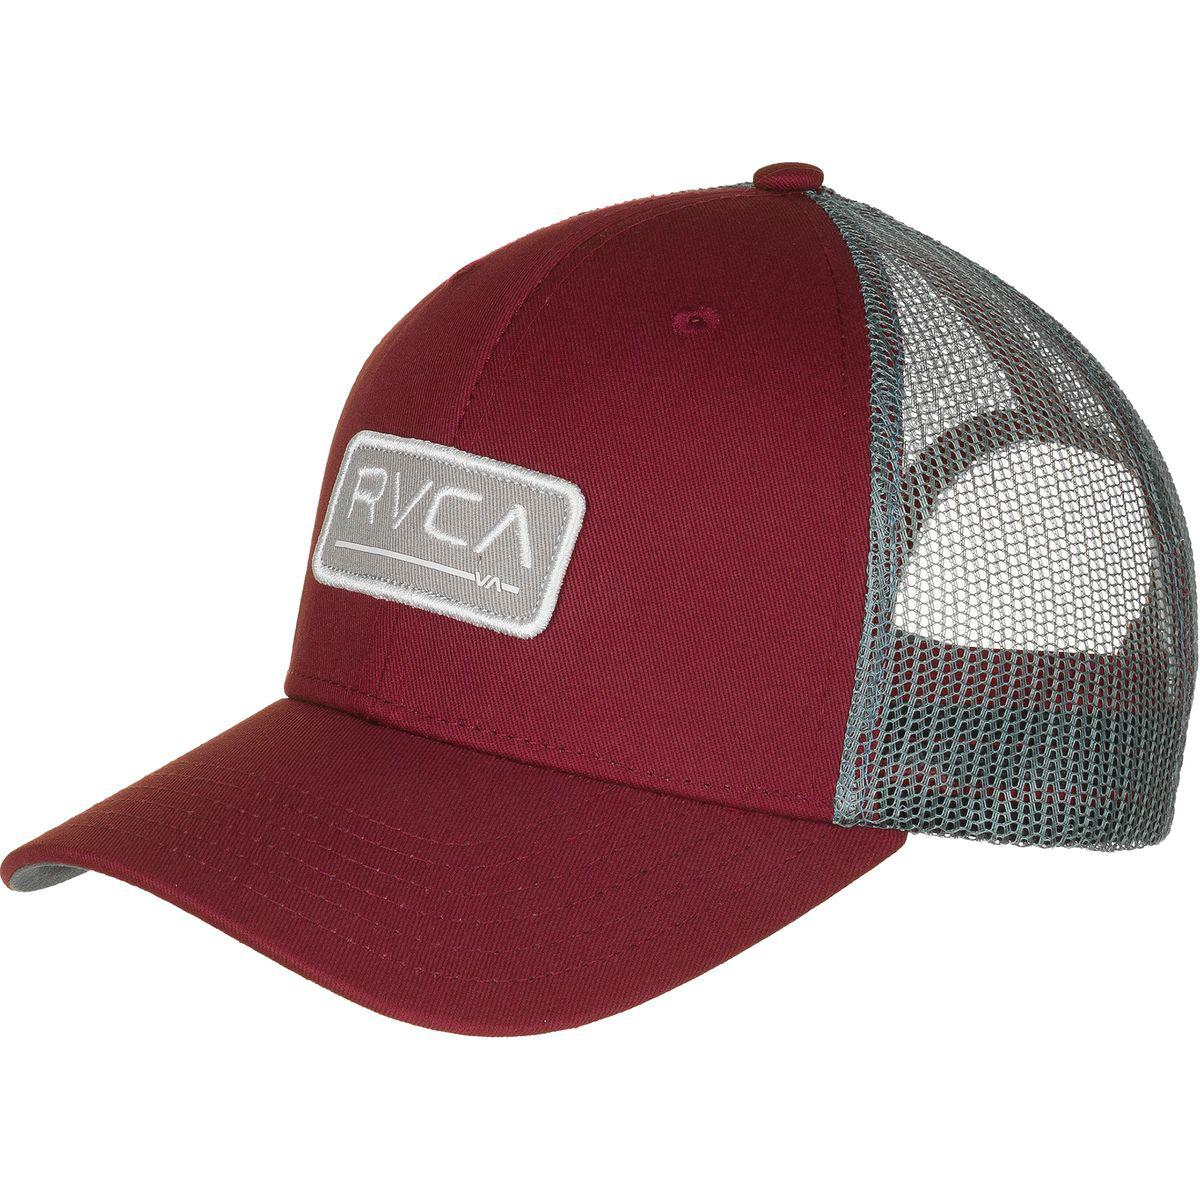 637ea890bac18 ... australia lyst rvca ticket trucker hat in red for men a265b 1cfeb